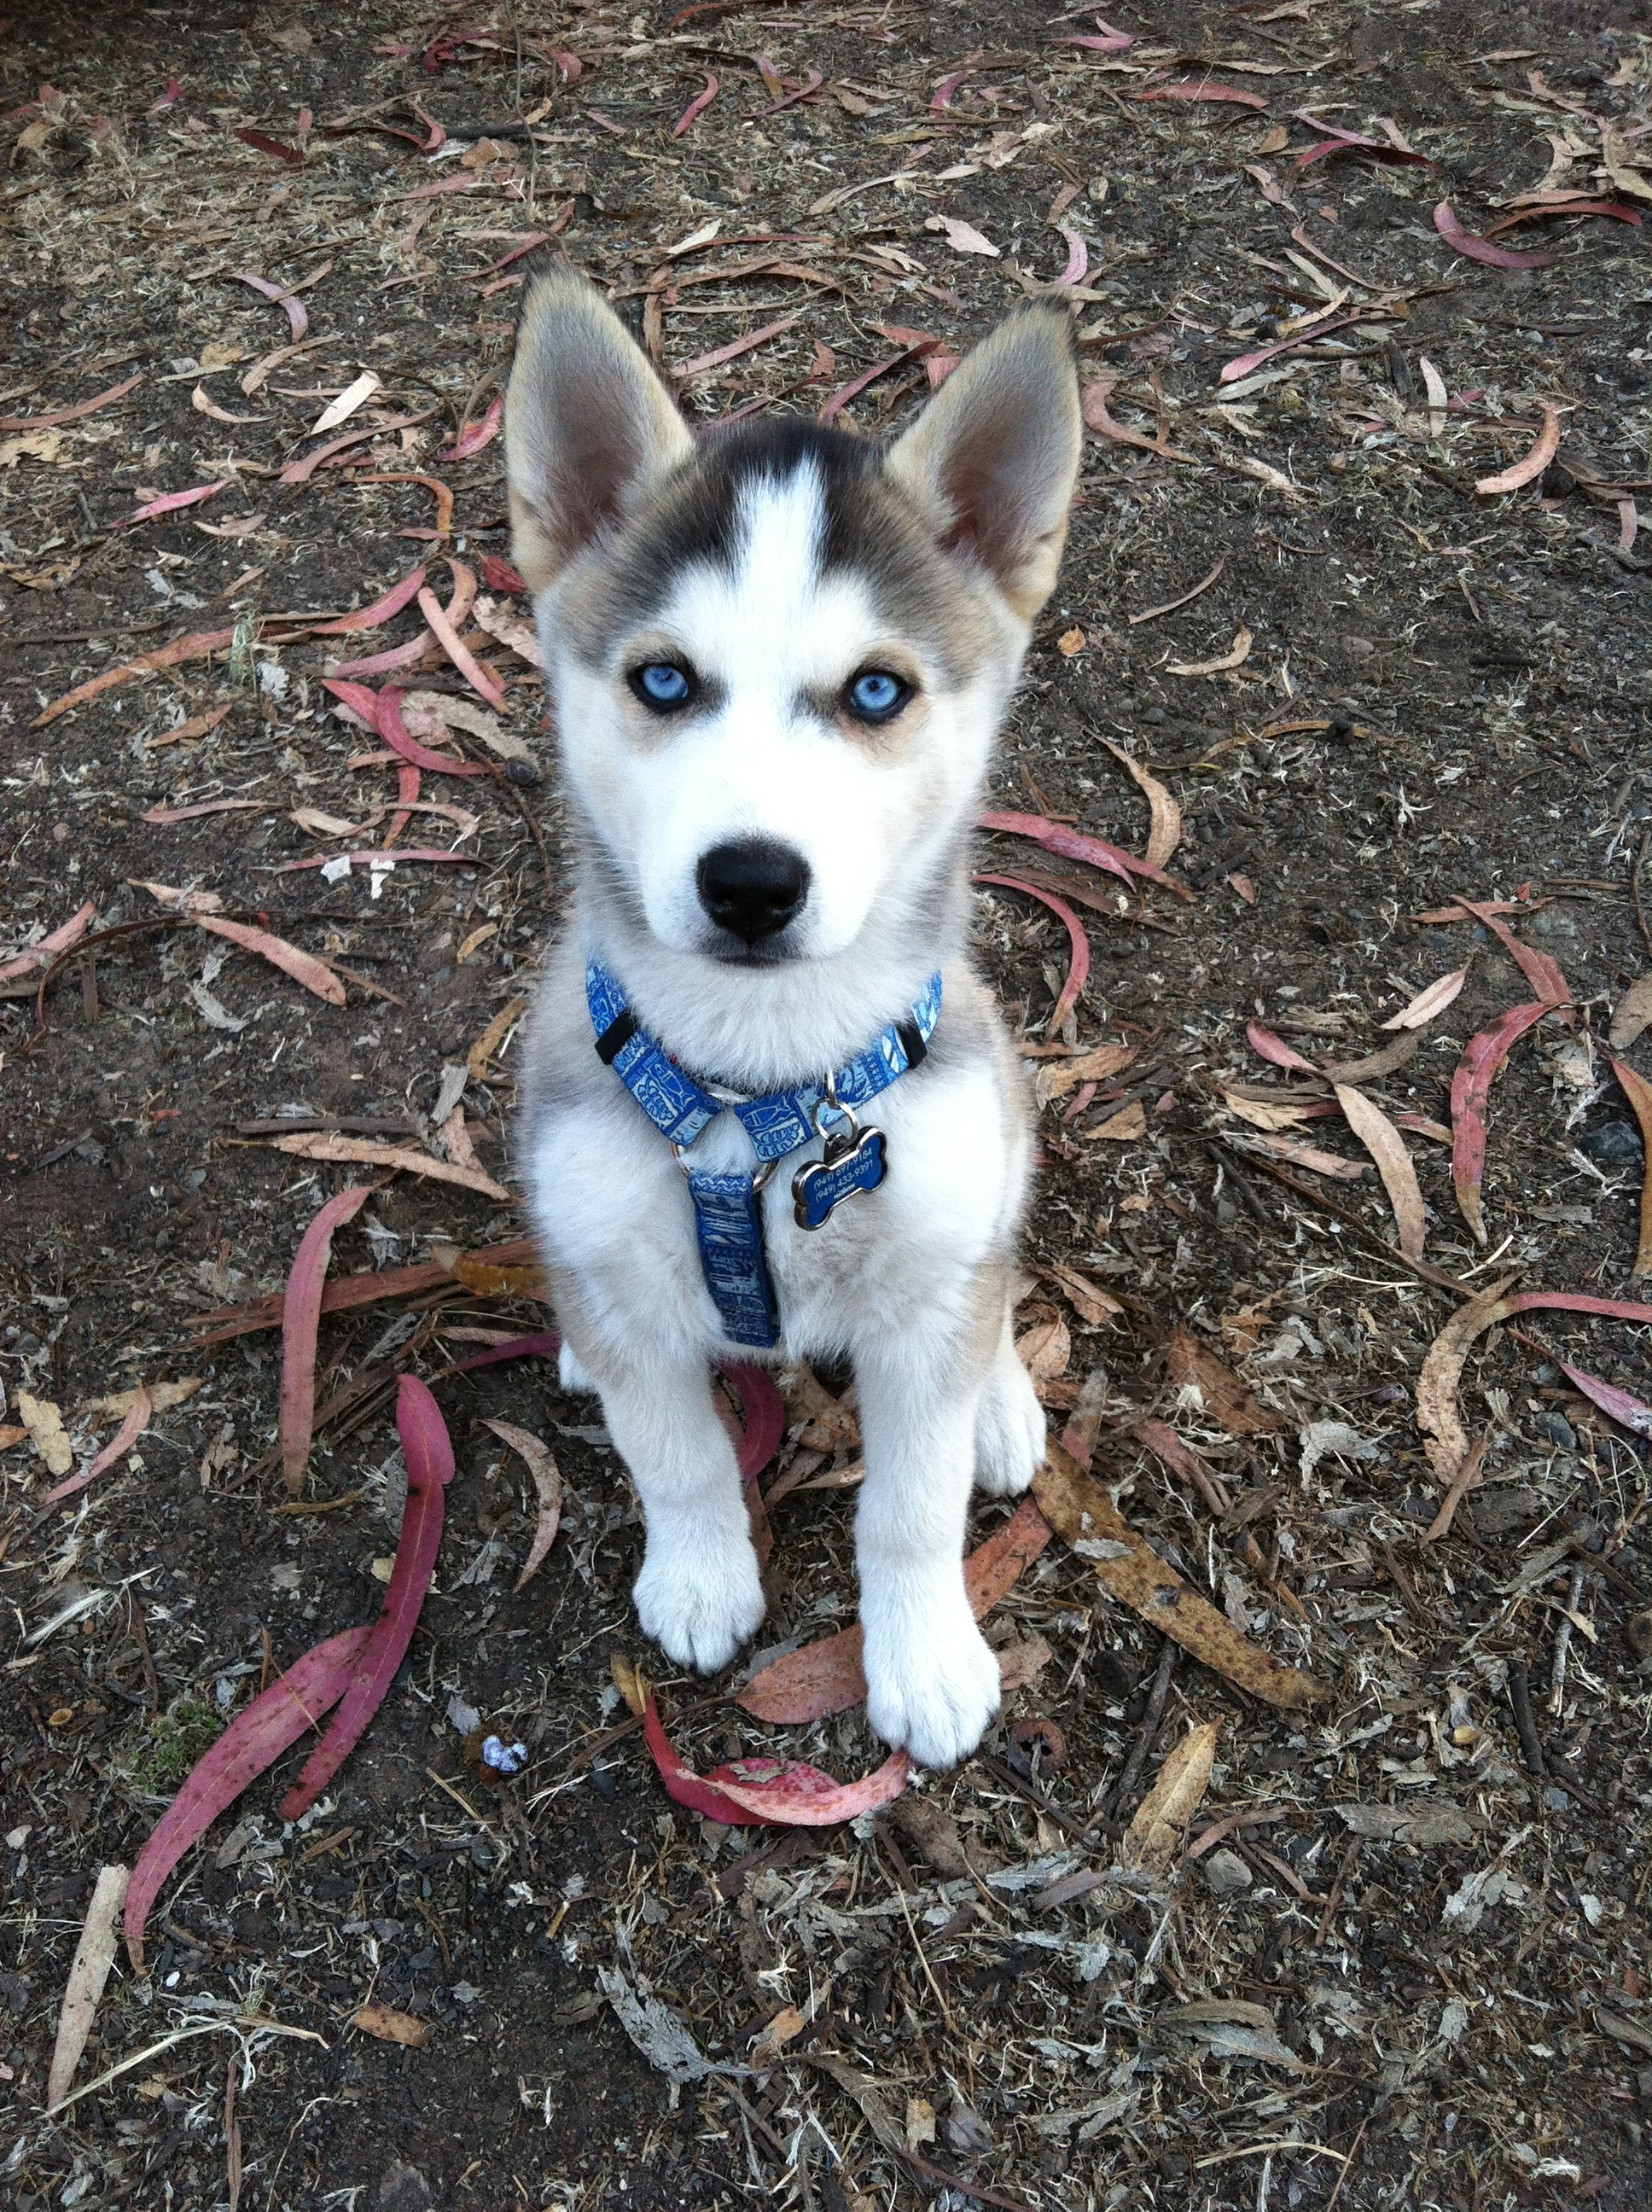 My husky puppy, Summer